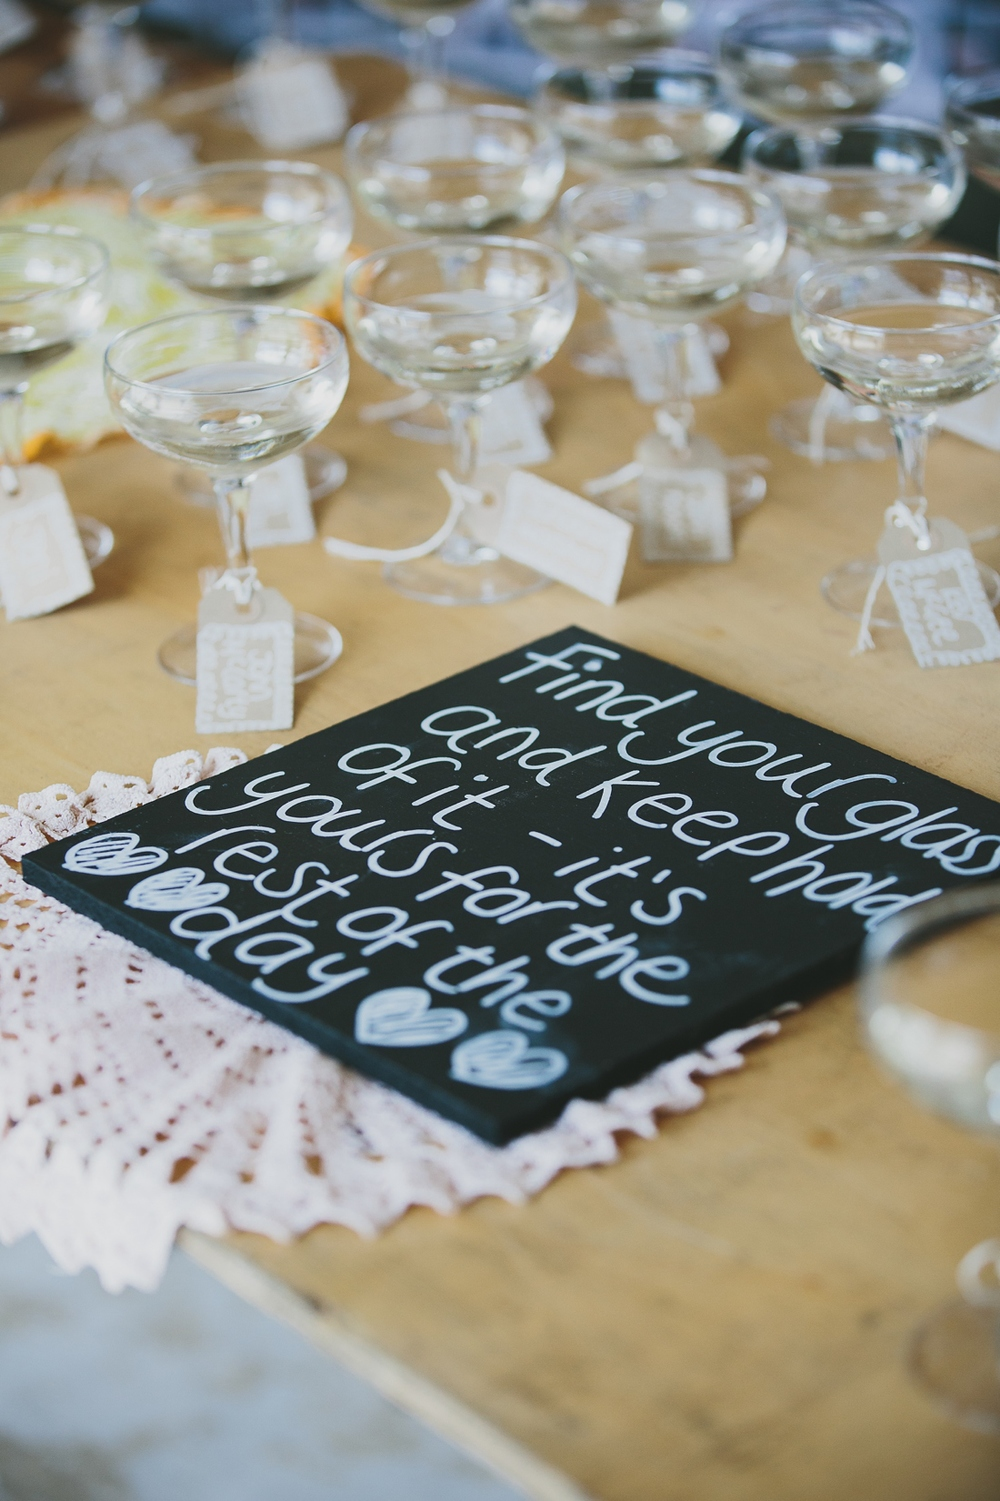 Cocktails | Cotswolds Wedding Planner